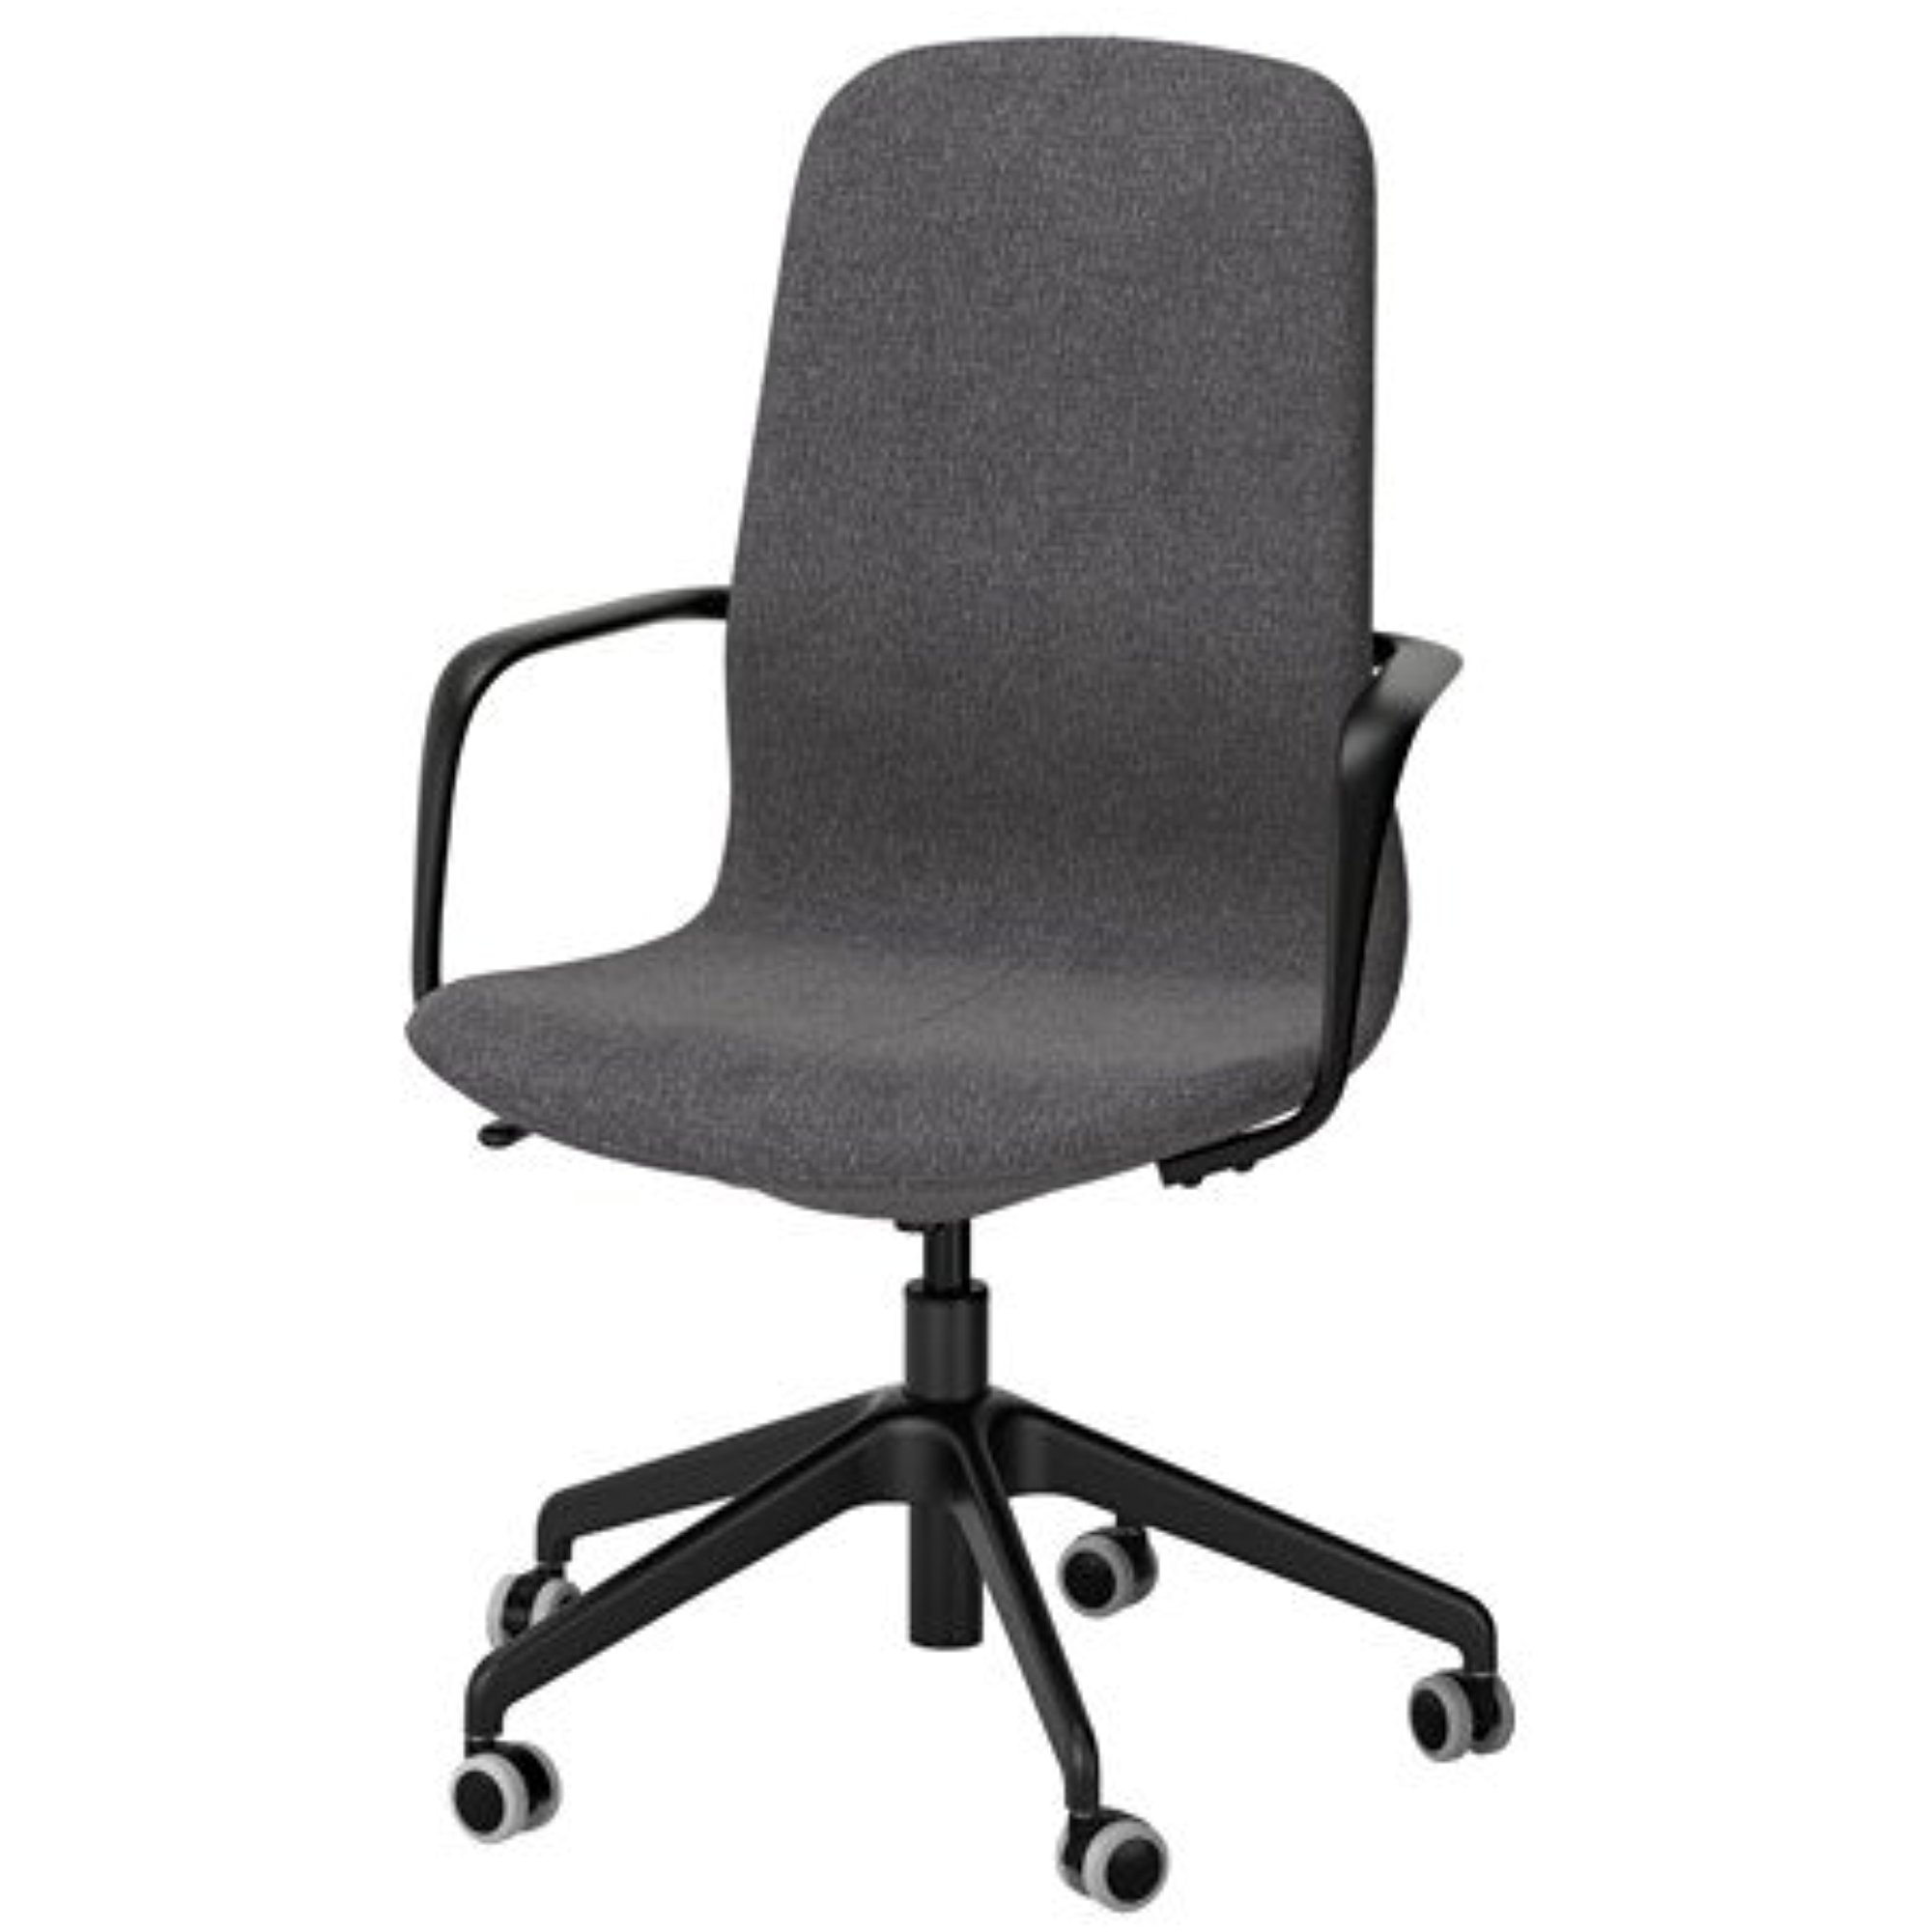 ikea swivel chair talpa unusual 41 with casters armrest gunnared dark gray seat black legs 18386 23262 168 walmart com